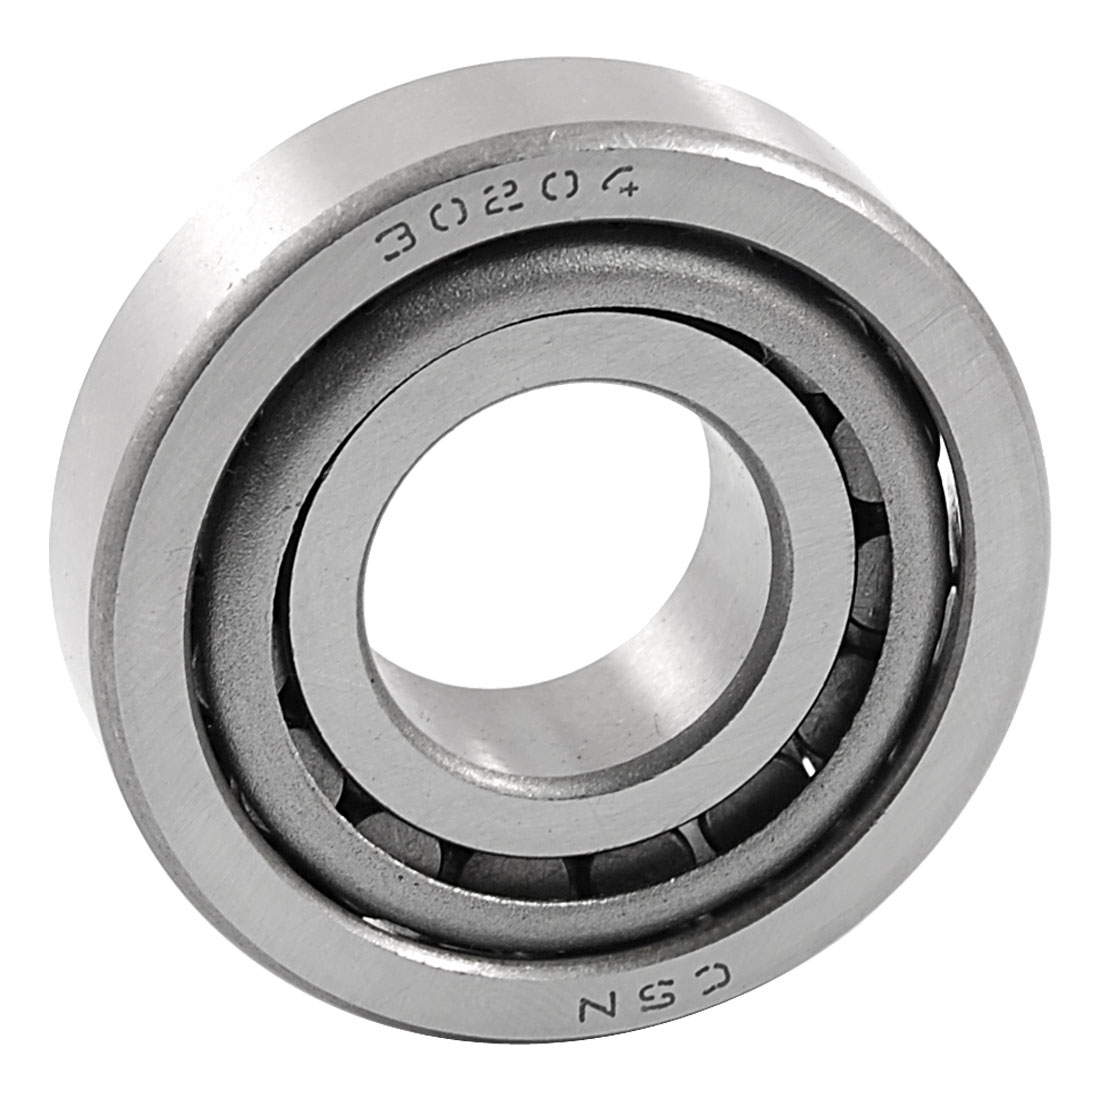 30204 20mm x 47mm x 15.25mm Single Row Taper Tapered Roller Bearing